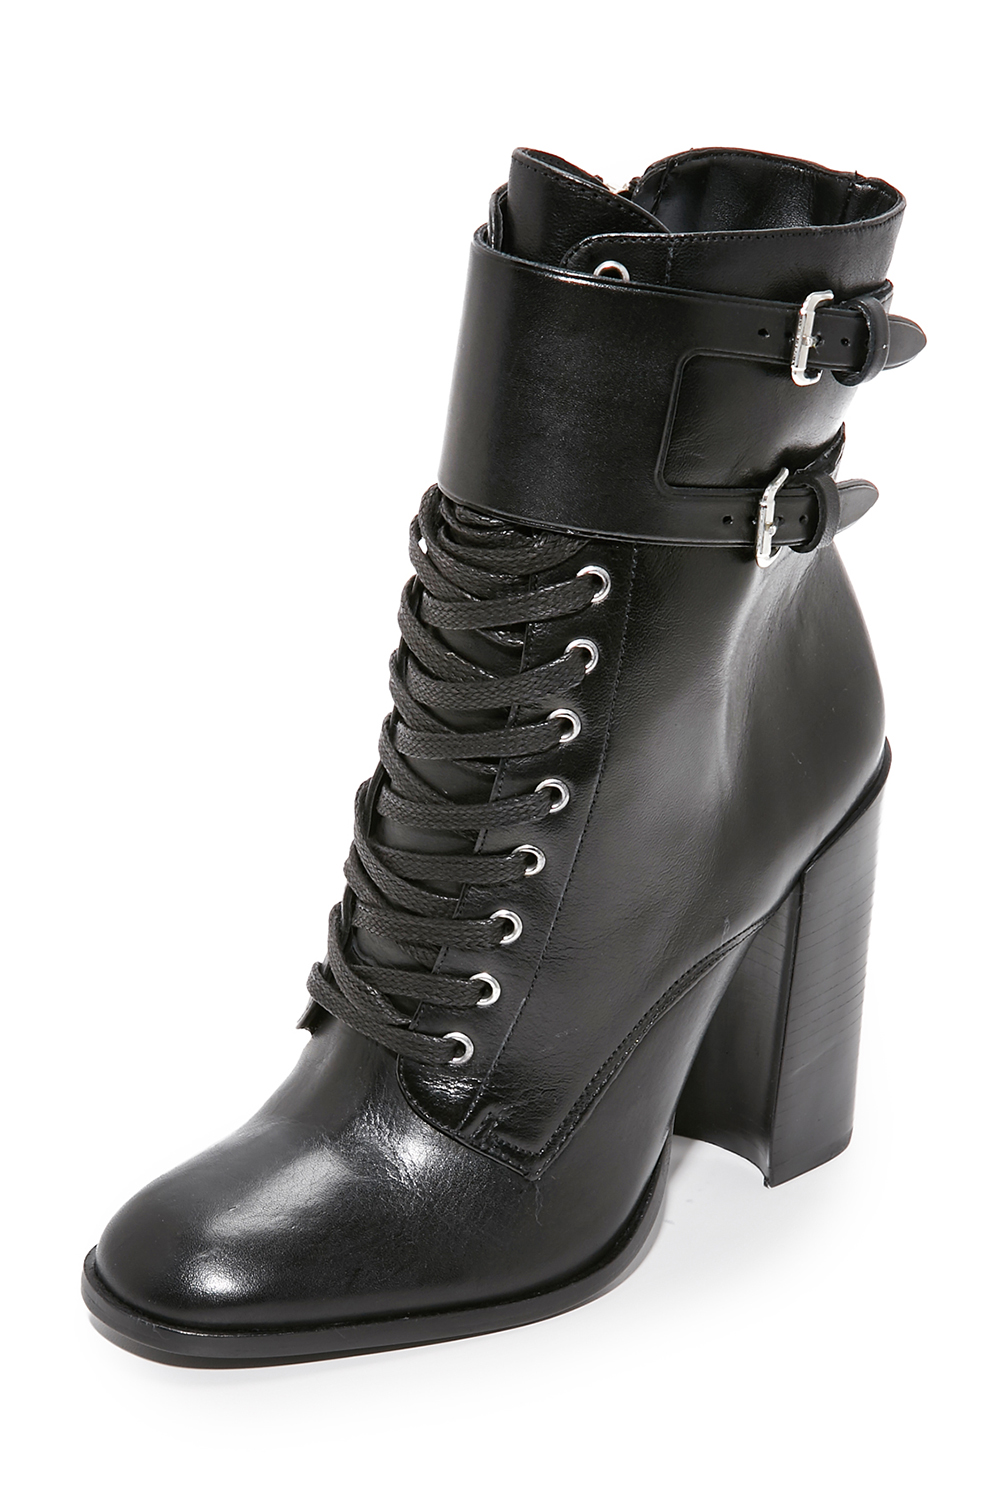 Schutz Makayla Leather Booties - Witchy Boots